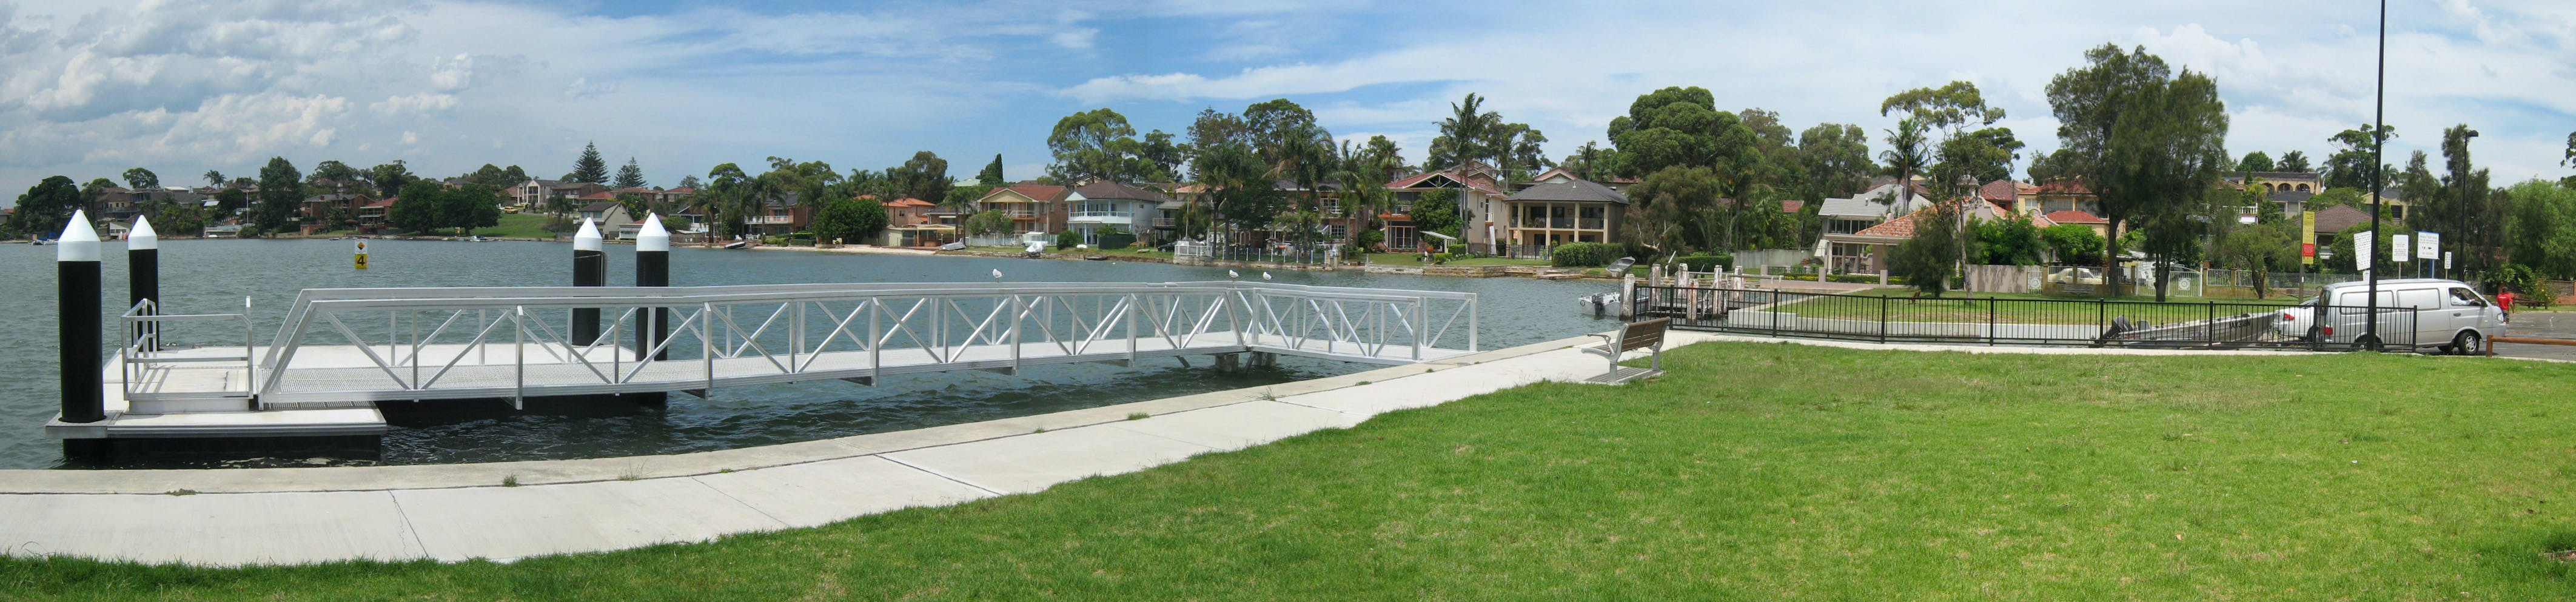 Hawkesbury Park Boat Ramp and Pontoon